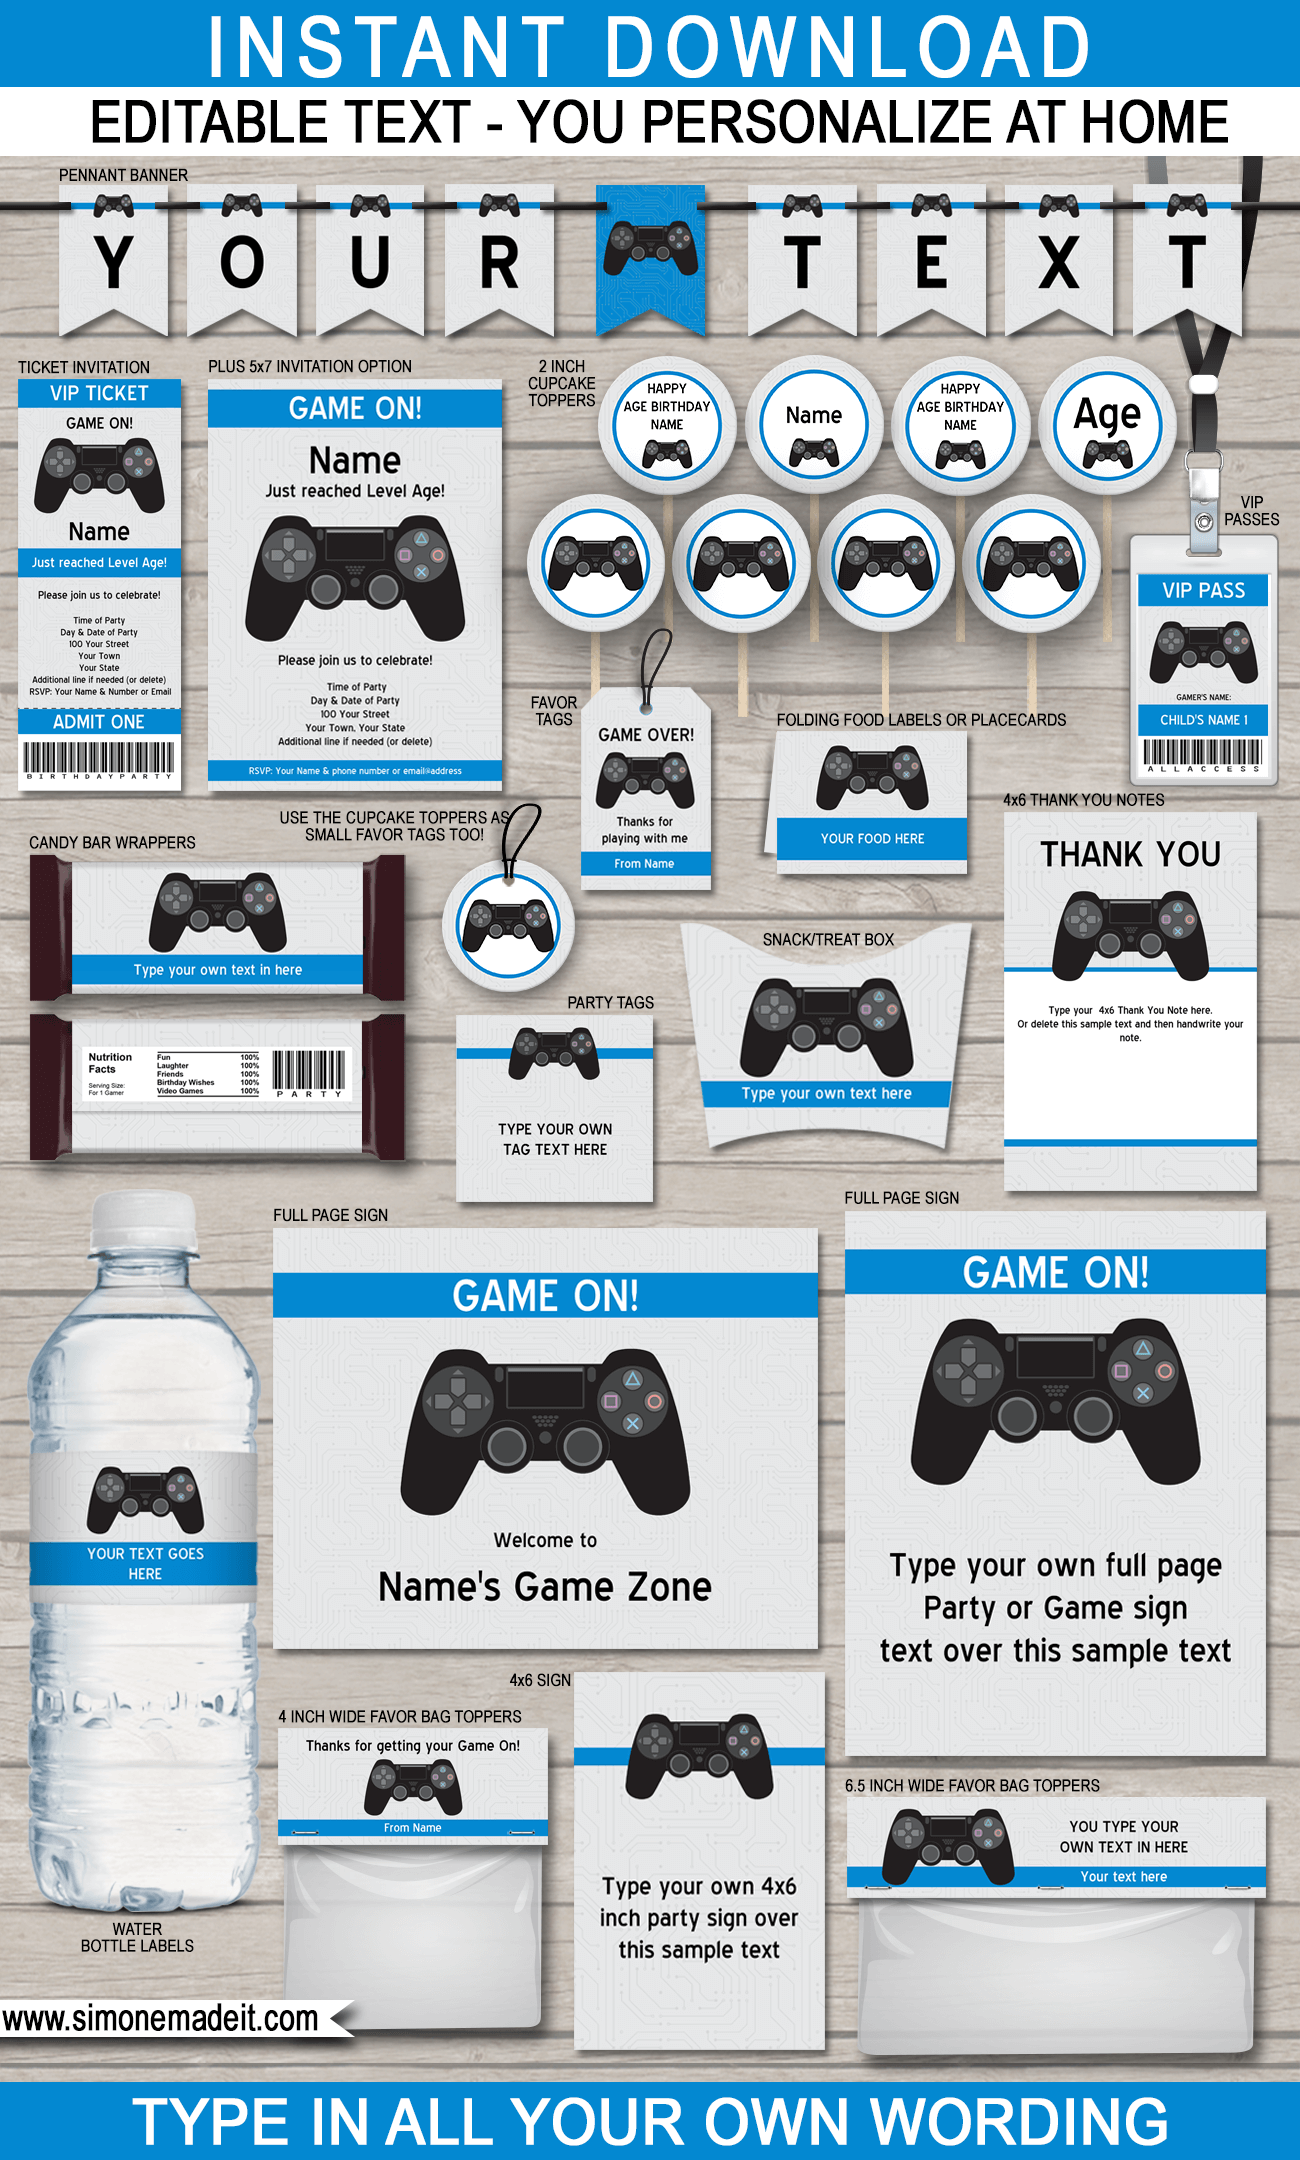 Playstation Birthday Party Printables, Invitations & Decorations - Video Game Theme - Black Playstation Controller - Gamer - Editable & Printable templates - INSTANT DOWNLOAD via simonemadeit.com